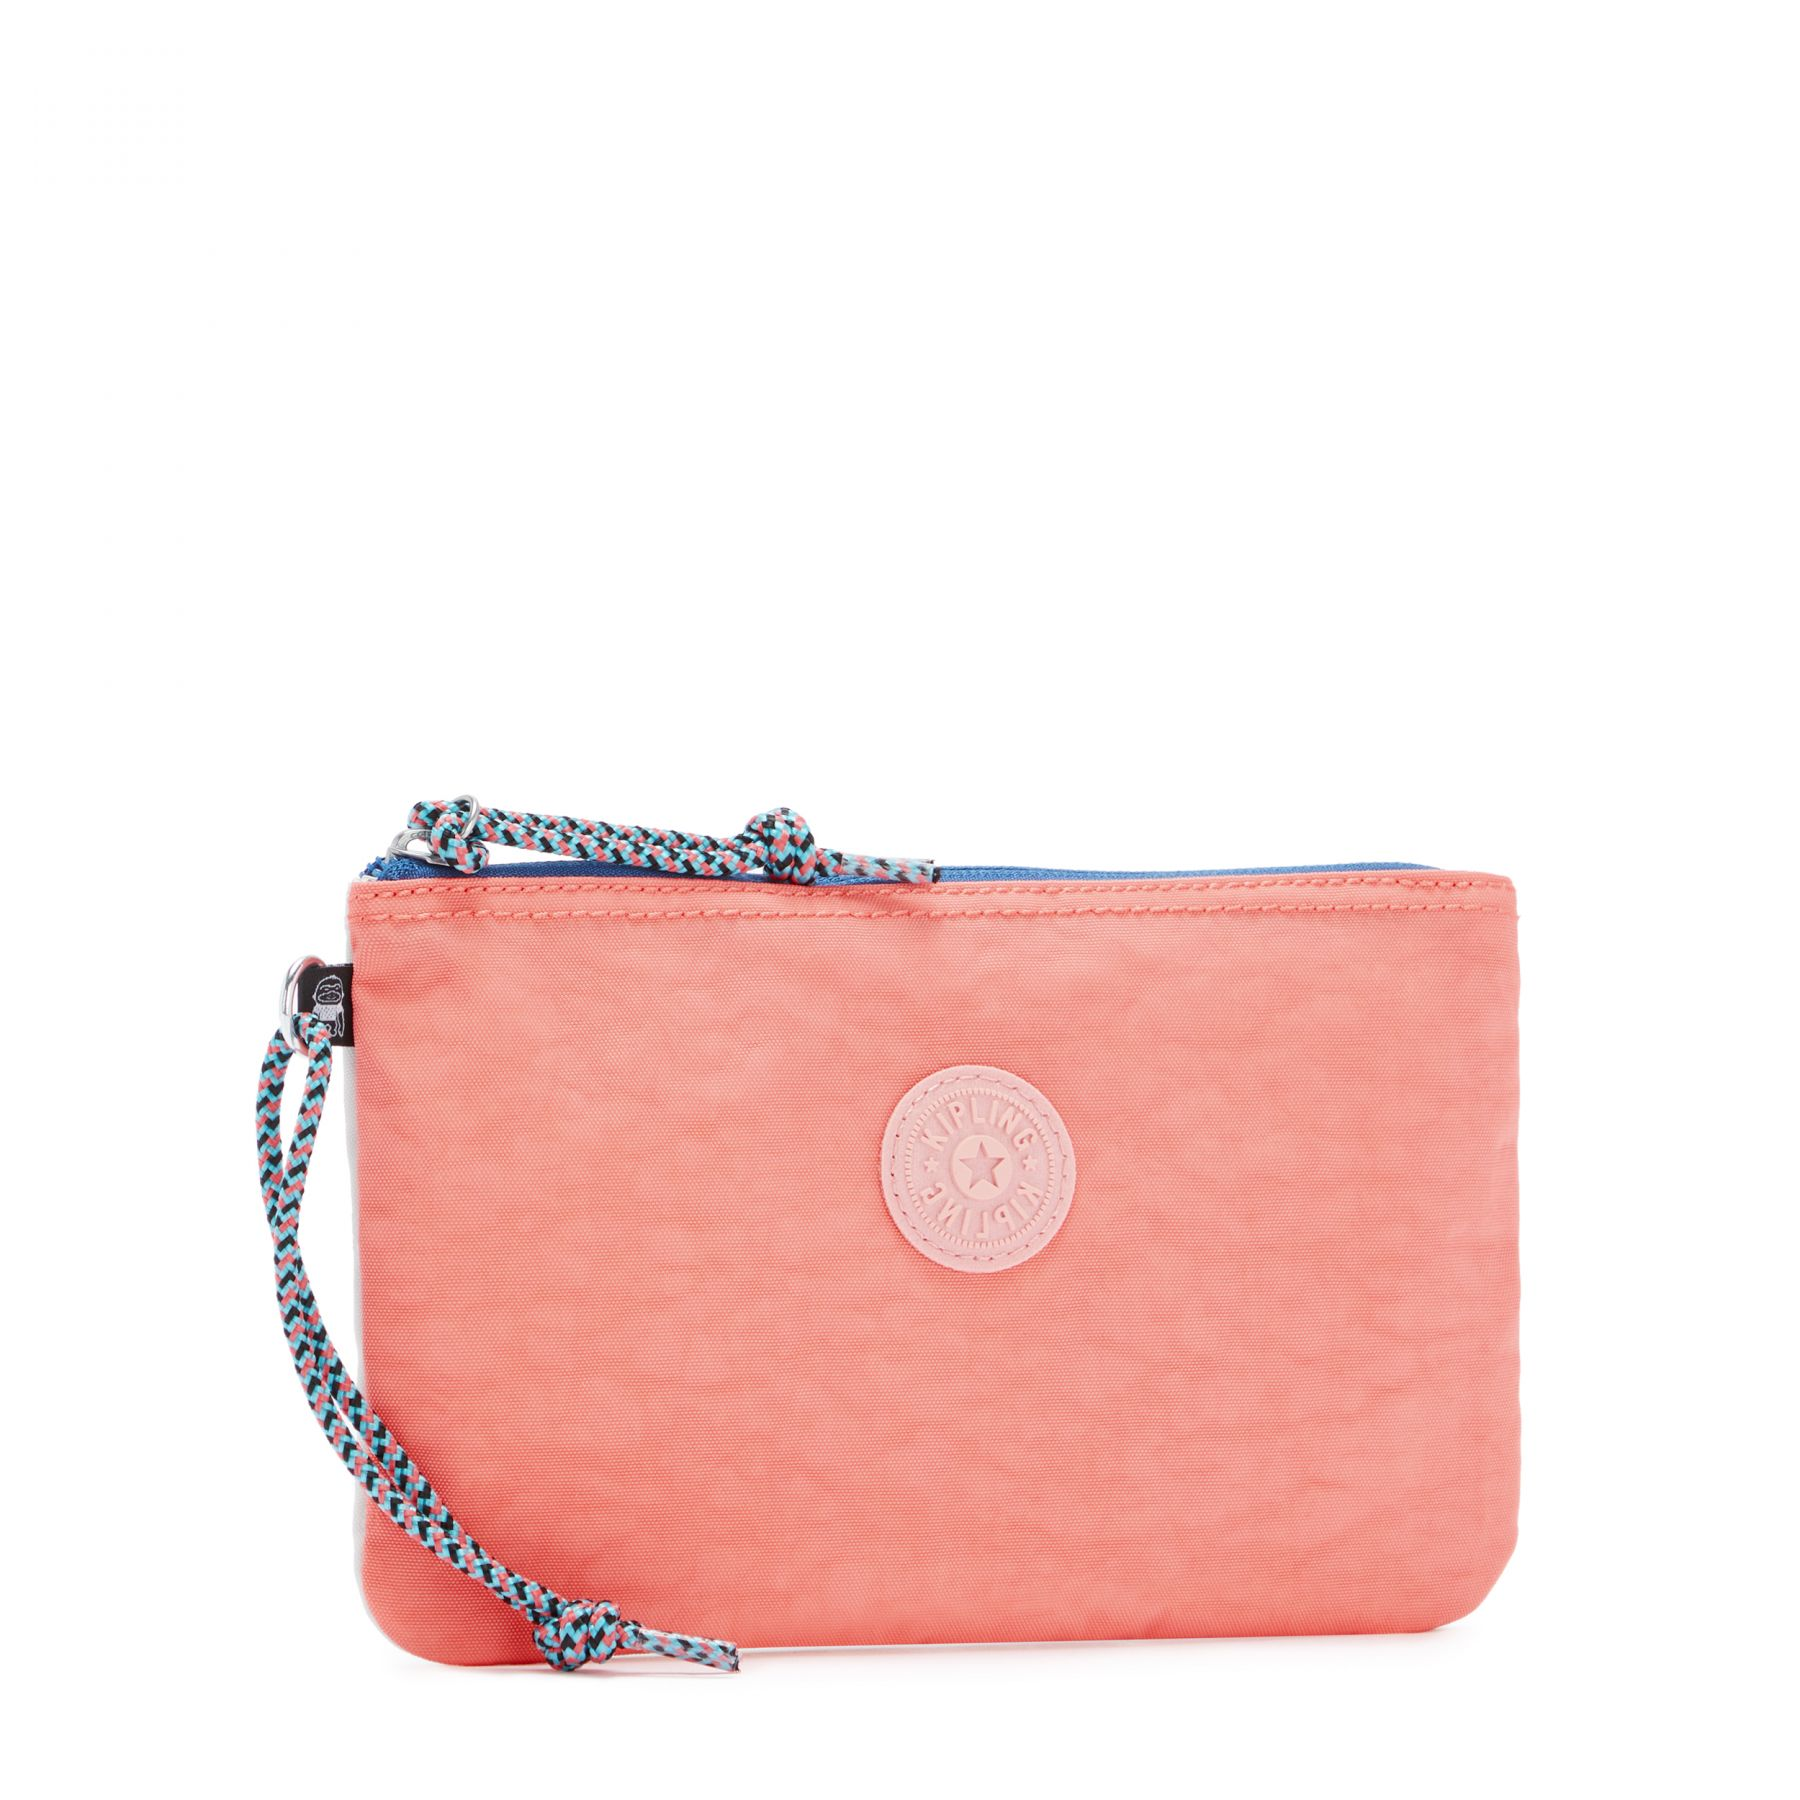 CASUAL POUCH ACCESSORIES by Kipling